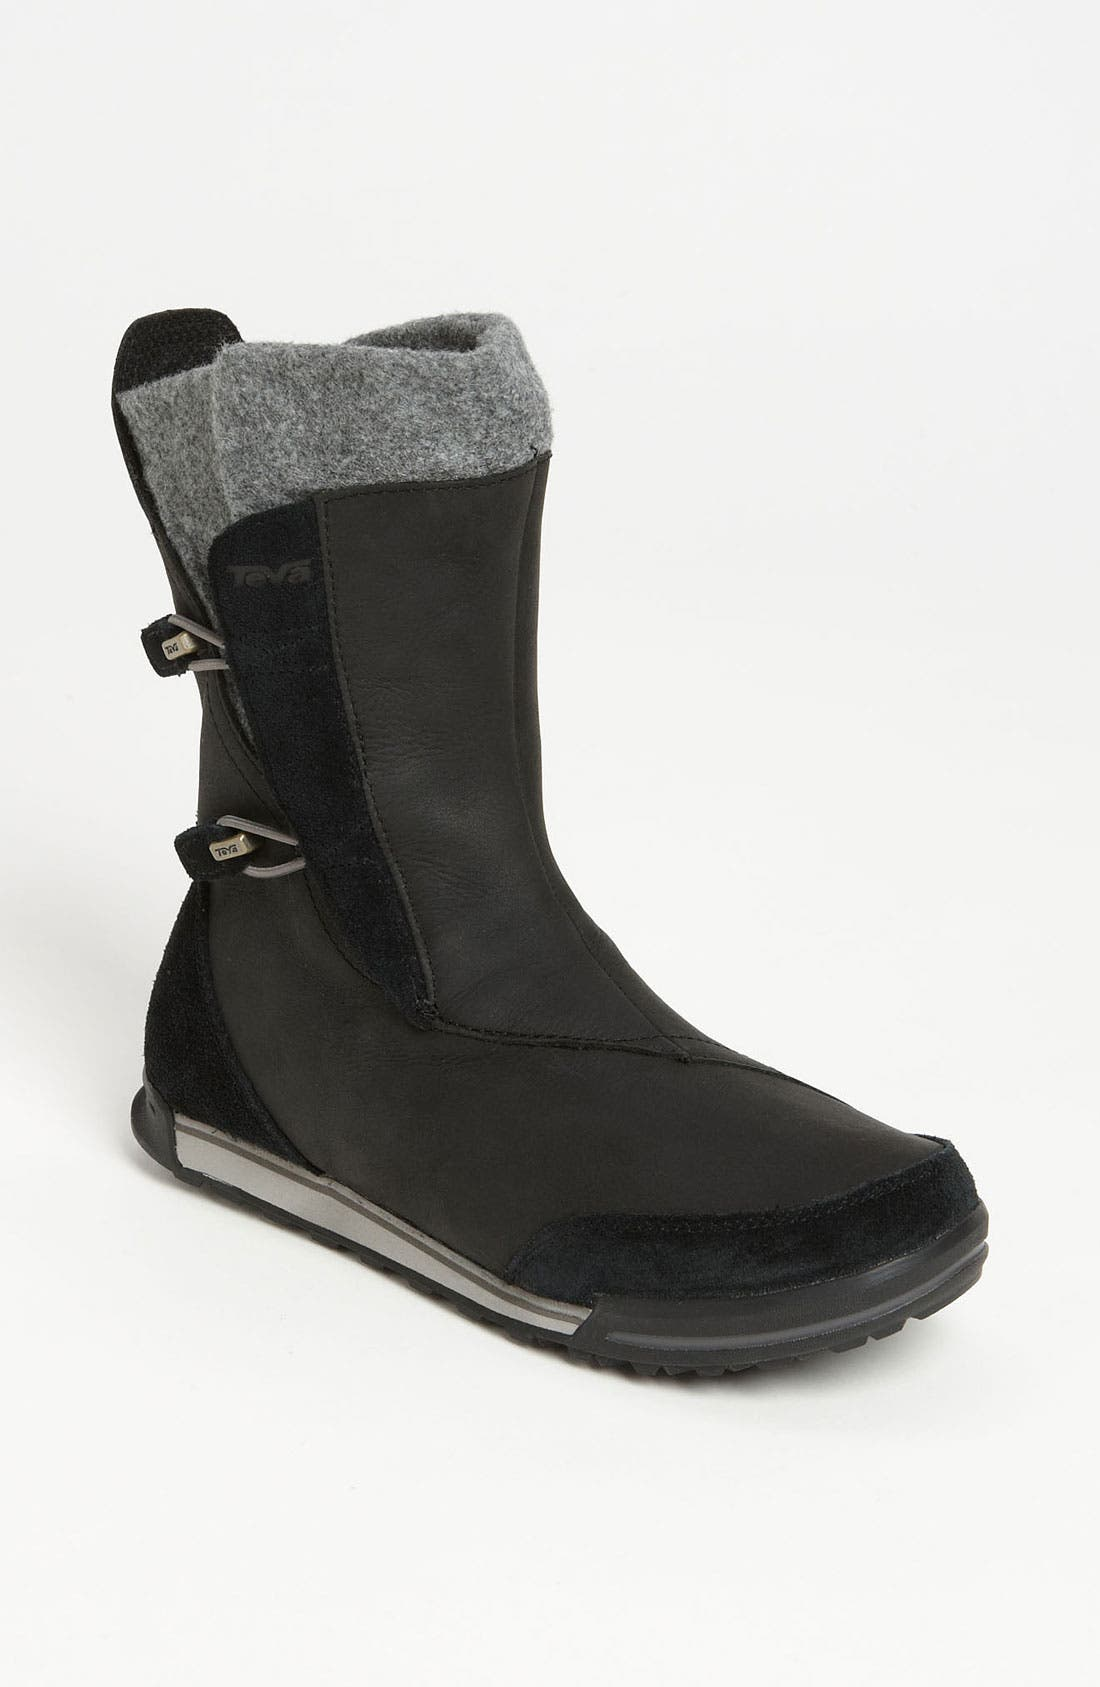 Alternate Image 1 Selected - Teva 'Hayley' Waterproof Boot